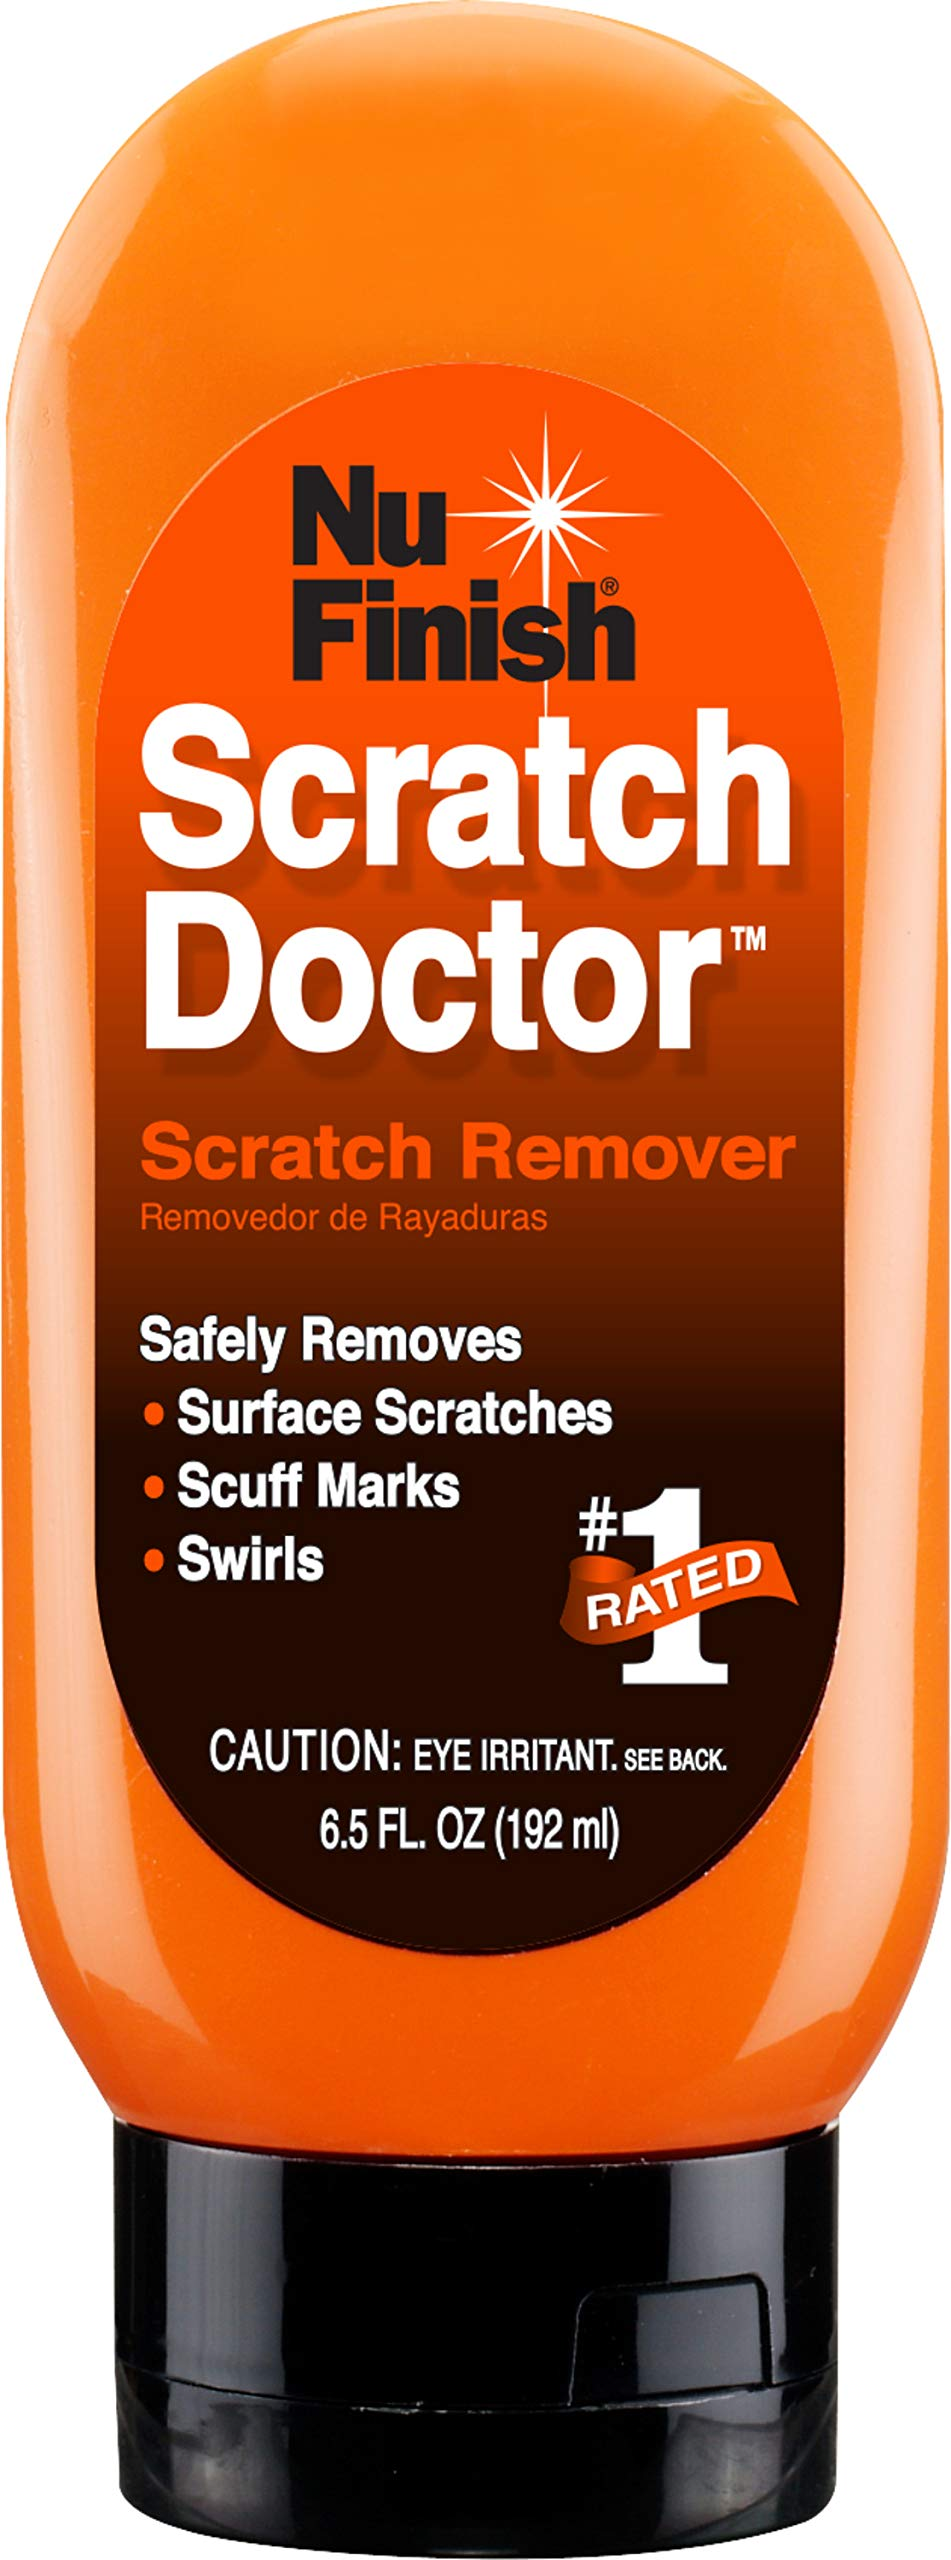 Nu Finish Car Scratch Remover, Scratch Removal for Cars - Perfect for Removing Paint Scrapes, Scuffs, Haze and Swirl Marks on Cars, Fiberglass Boats, Motorcycles and Chrome Appliances